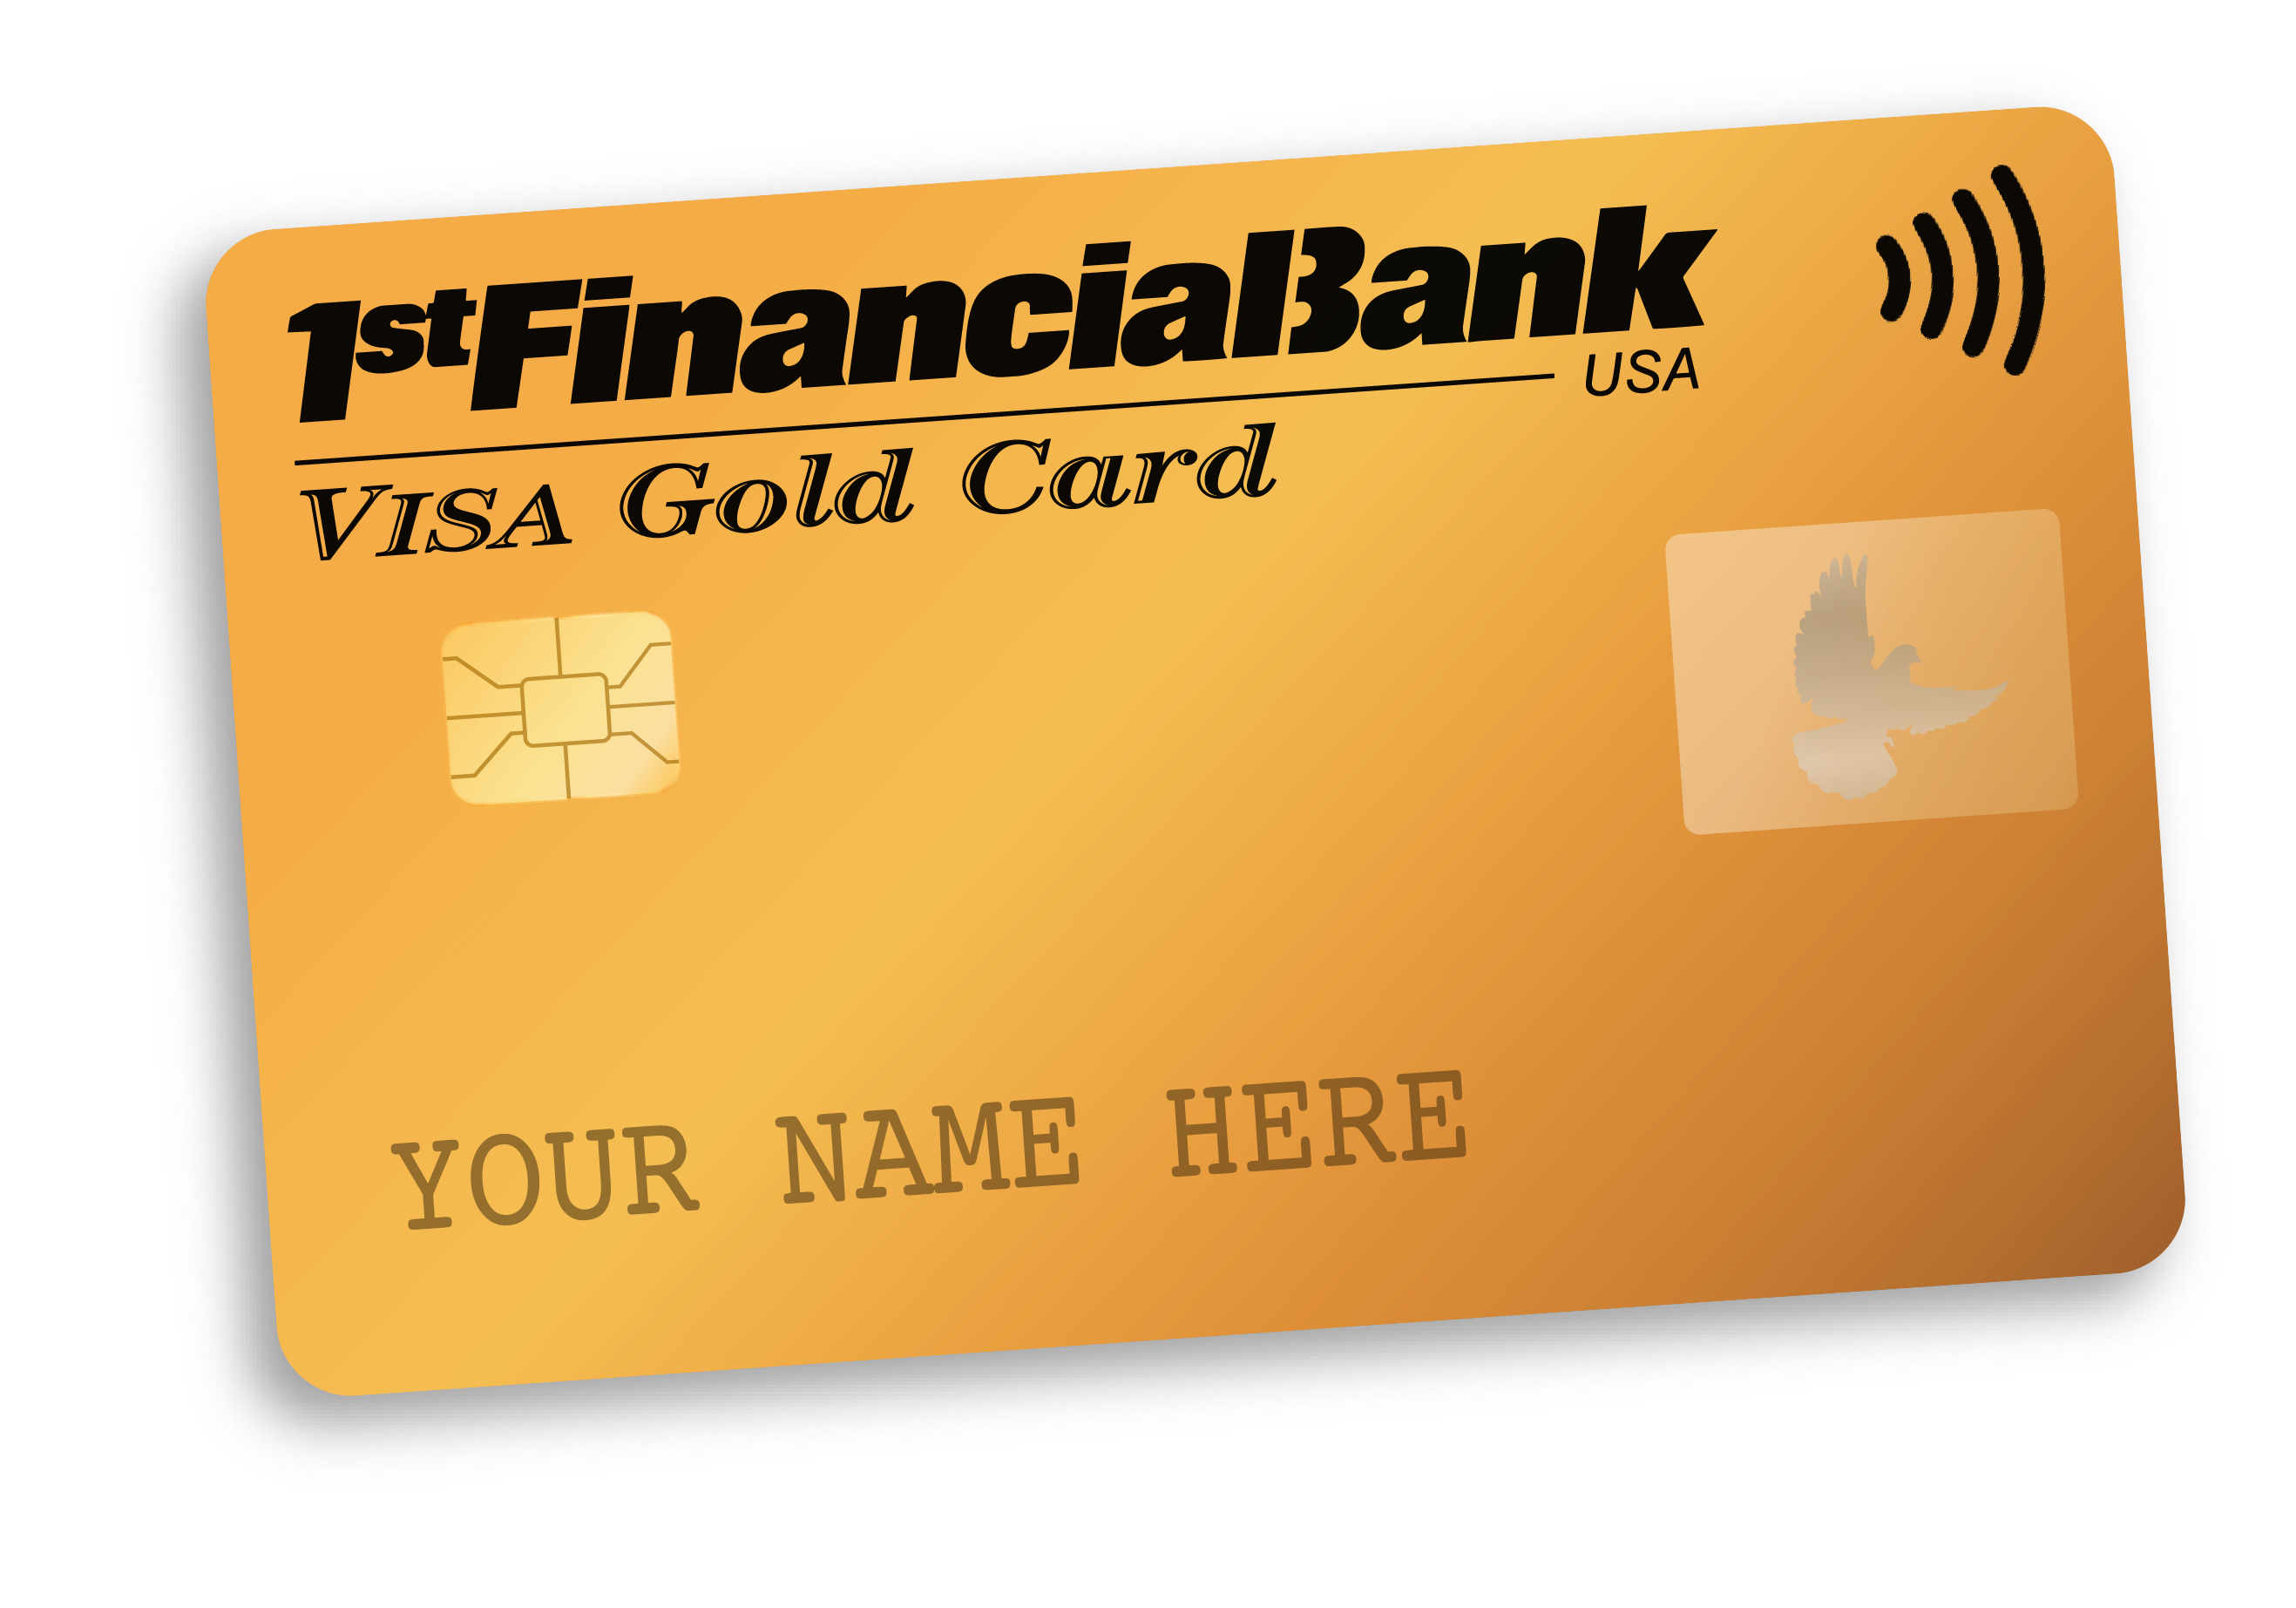 1st Financial Bank USA student credit card gold apply now